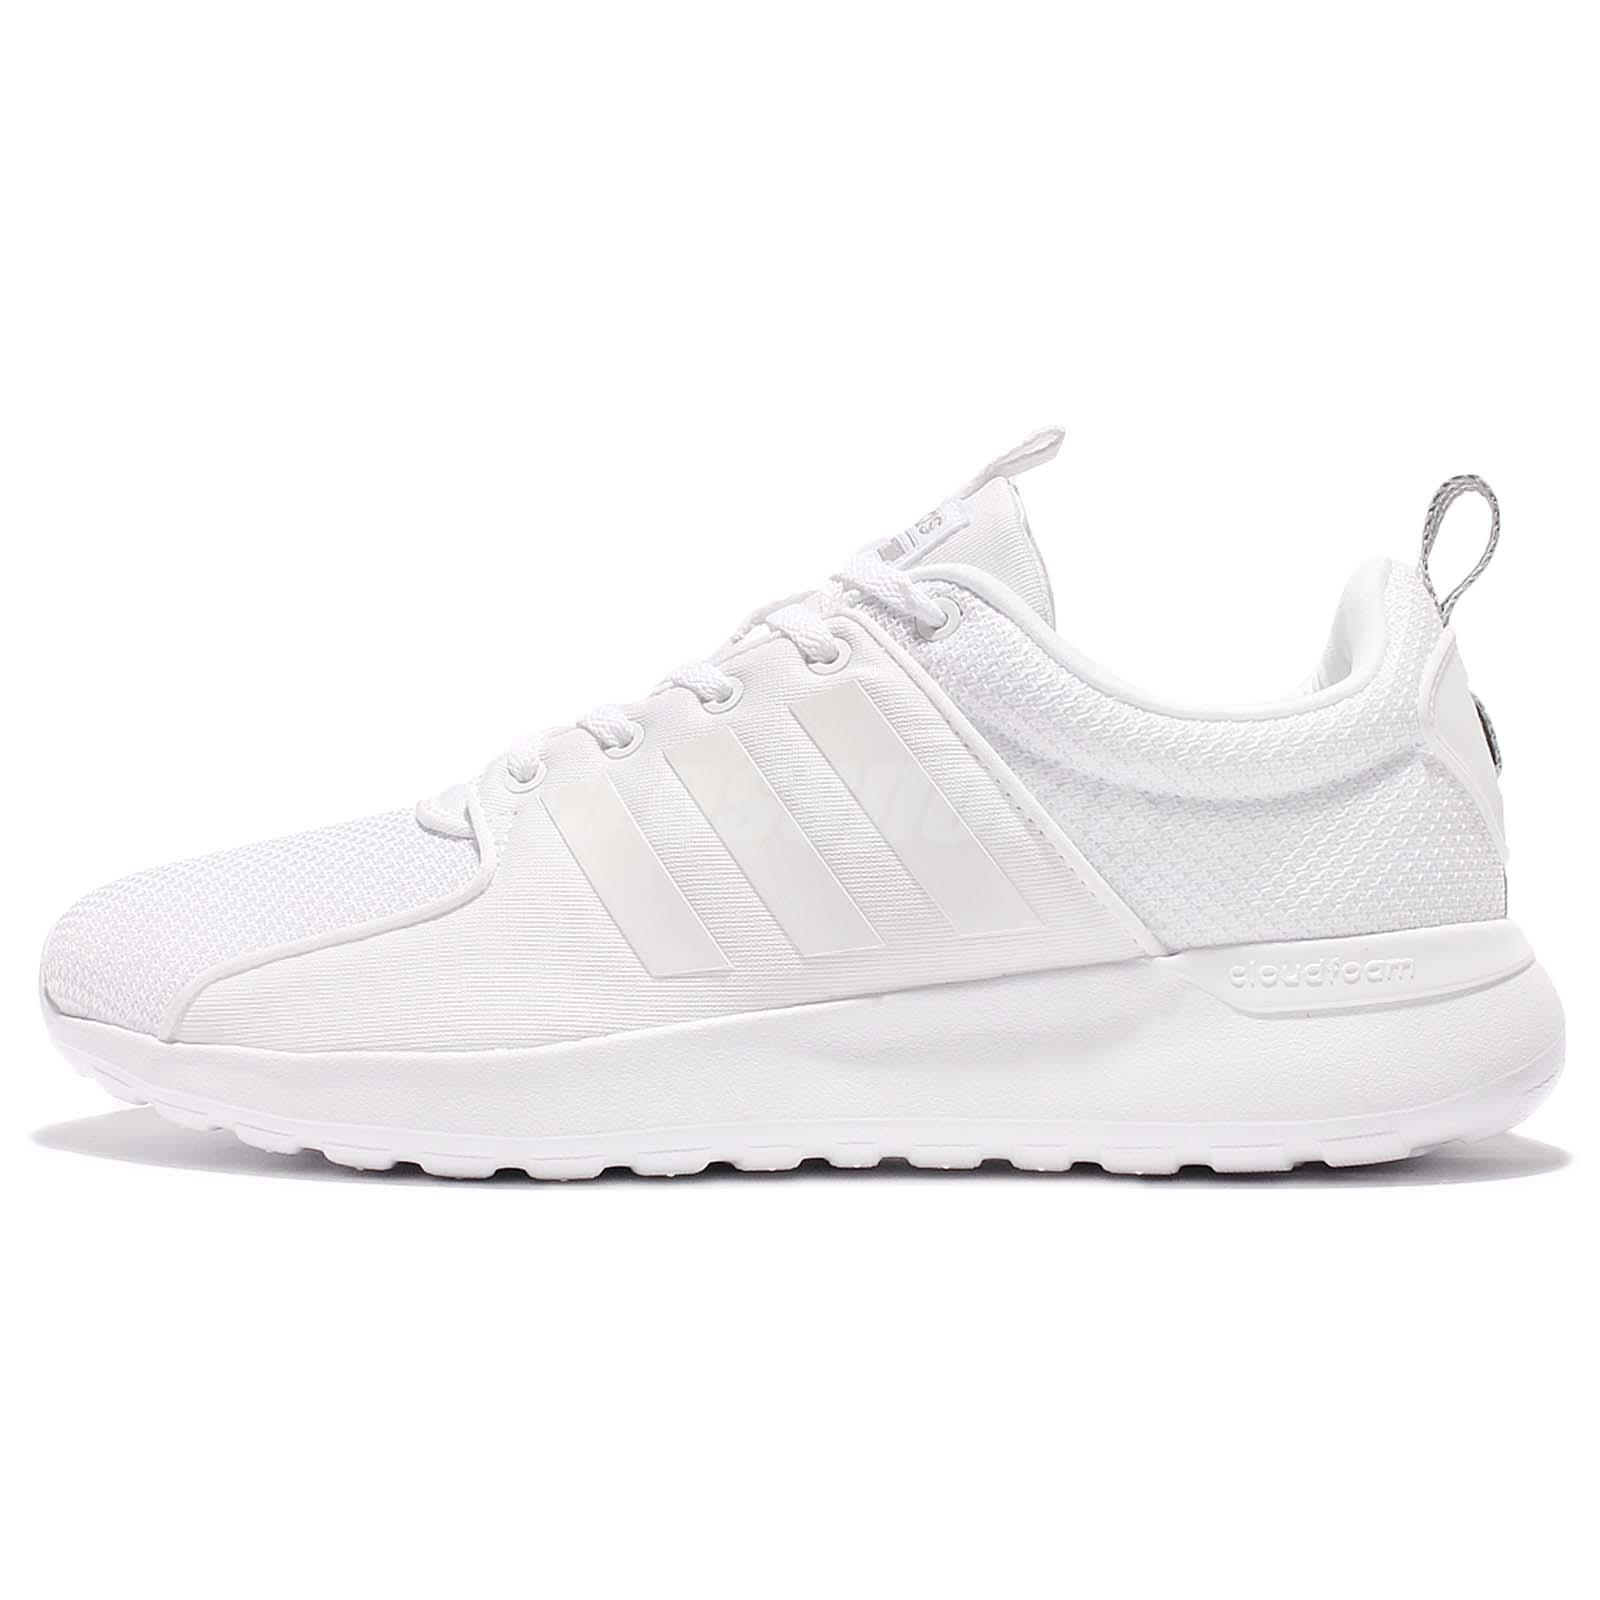 adidas Neo Label Cloudfoam Lite Racer Triple White Men Running Shoes AW4262